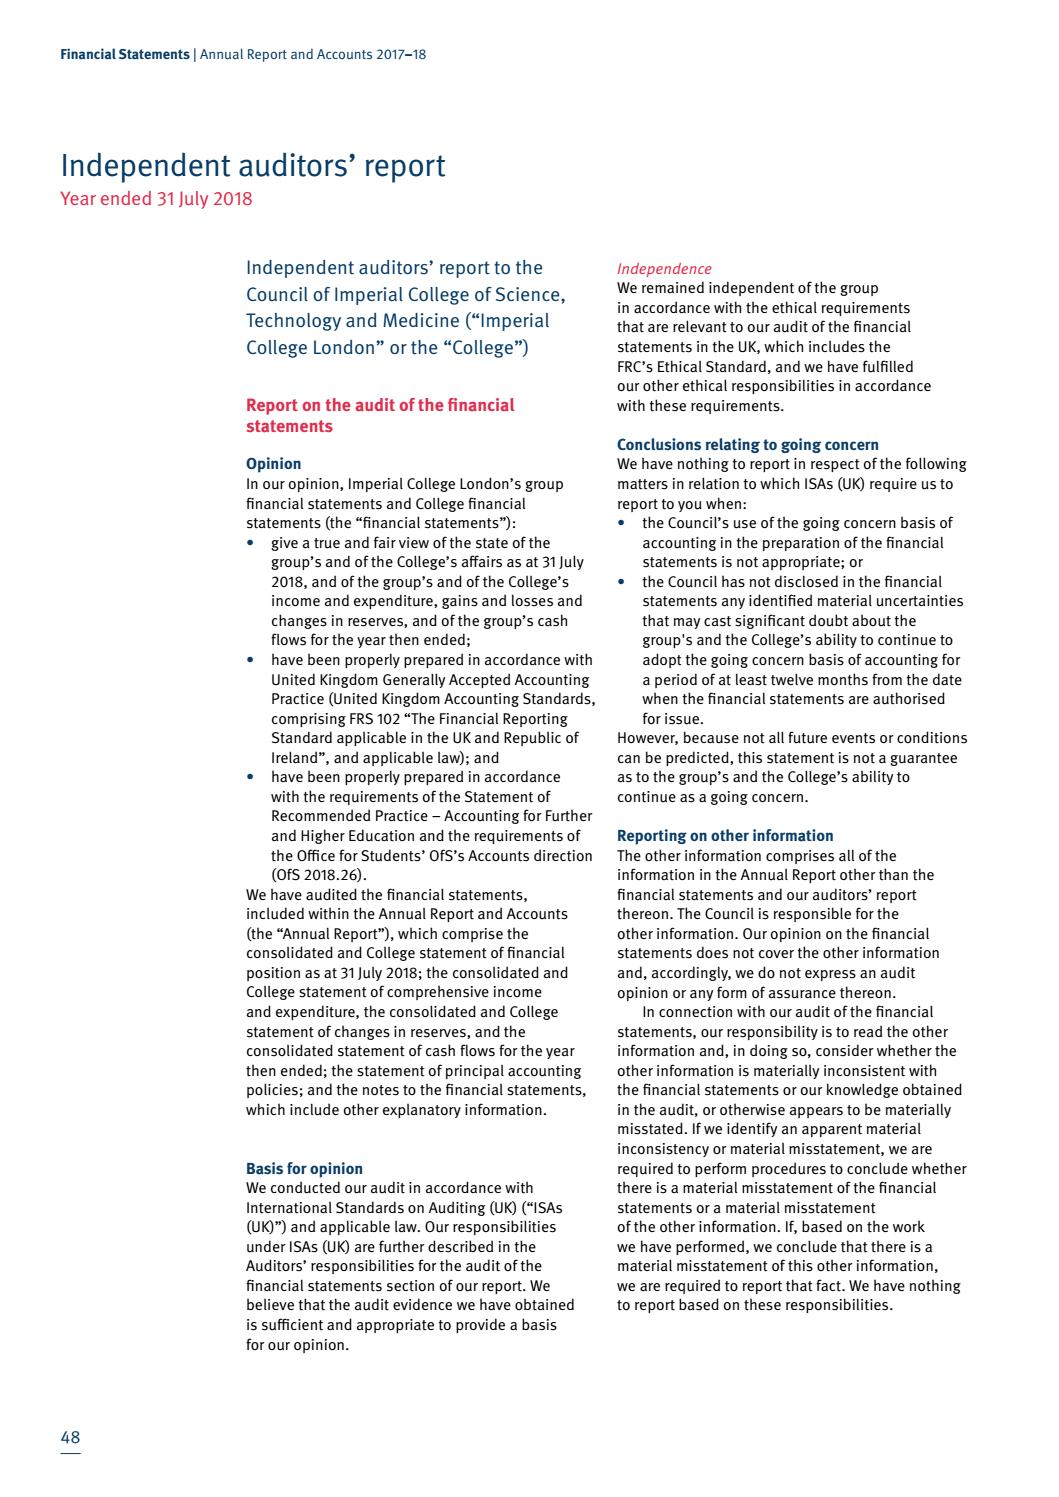 Imperial College London Annual Report and Accounts | 2017-18